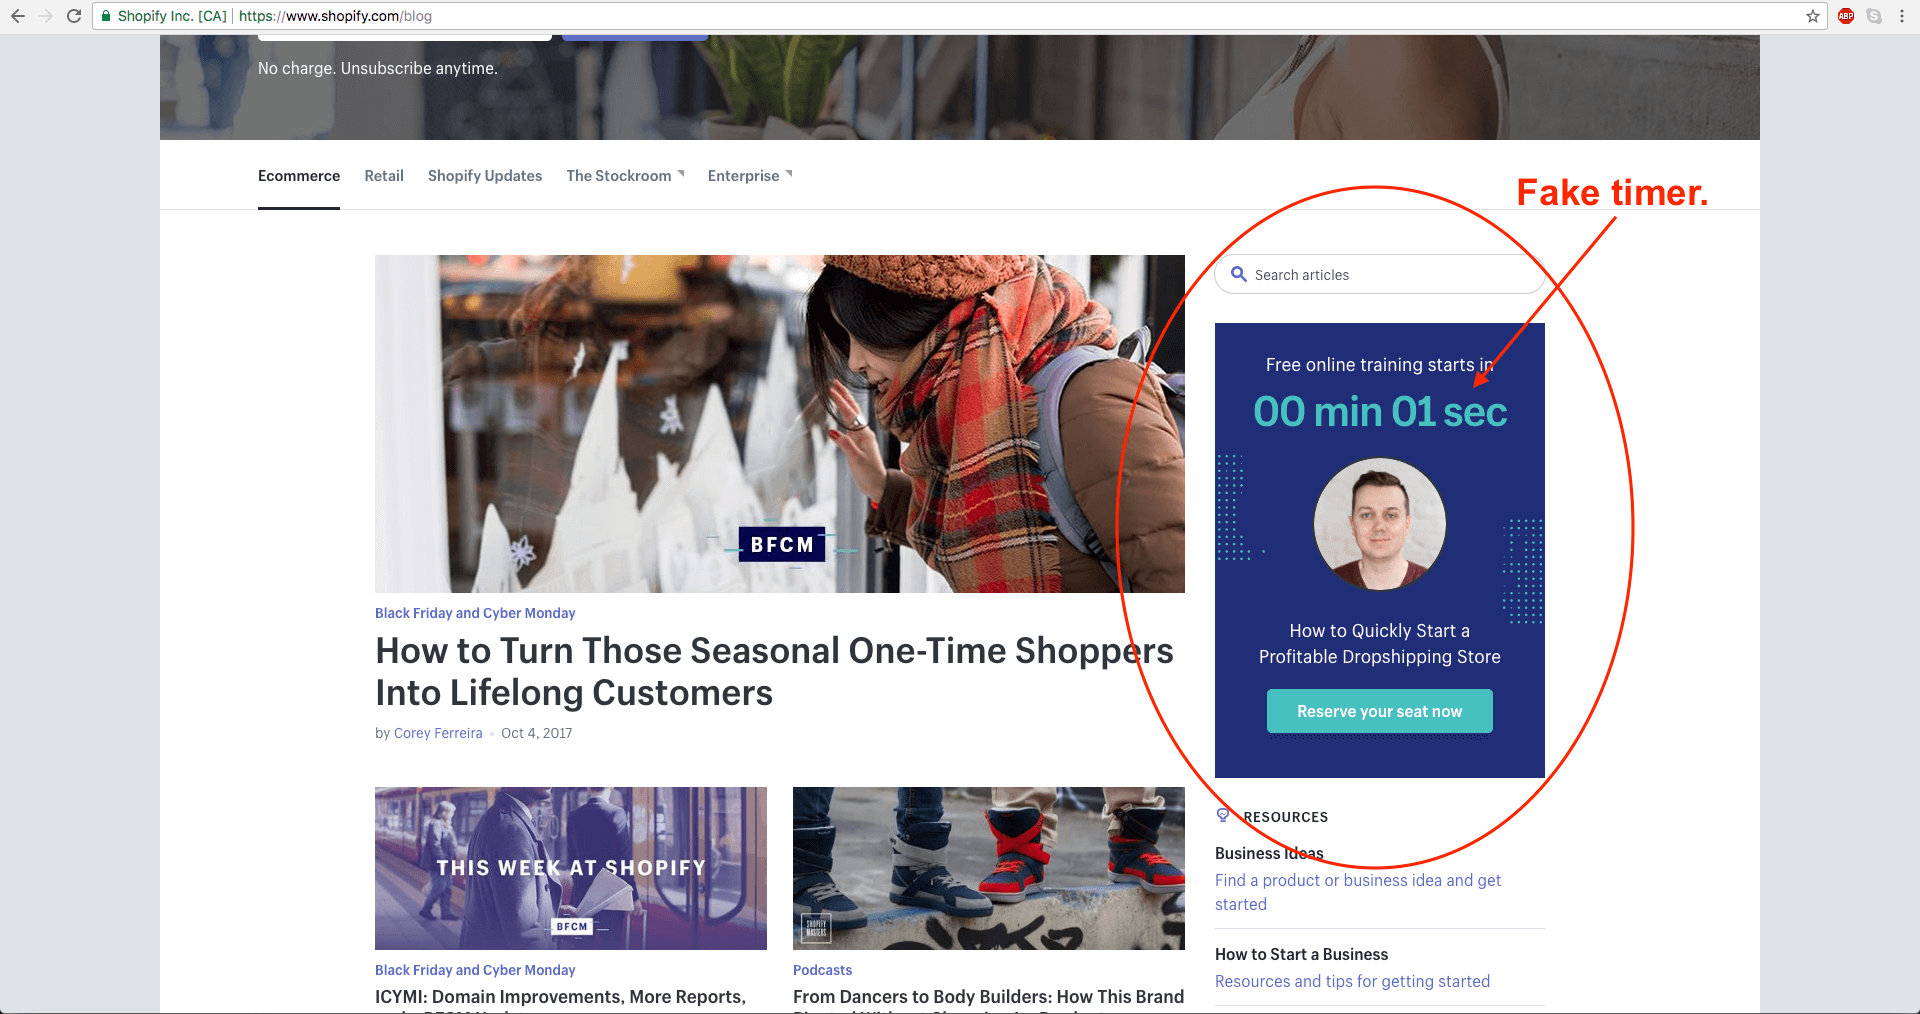 Image showing Shopify's deceptive marketing practices